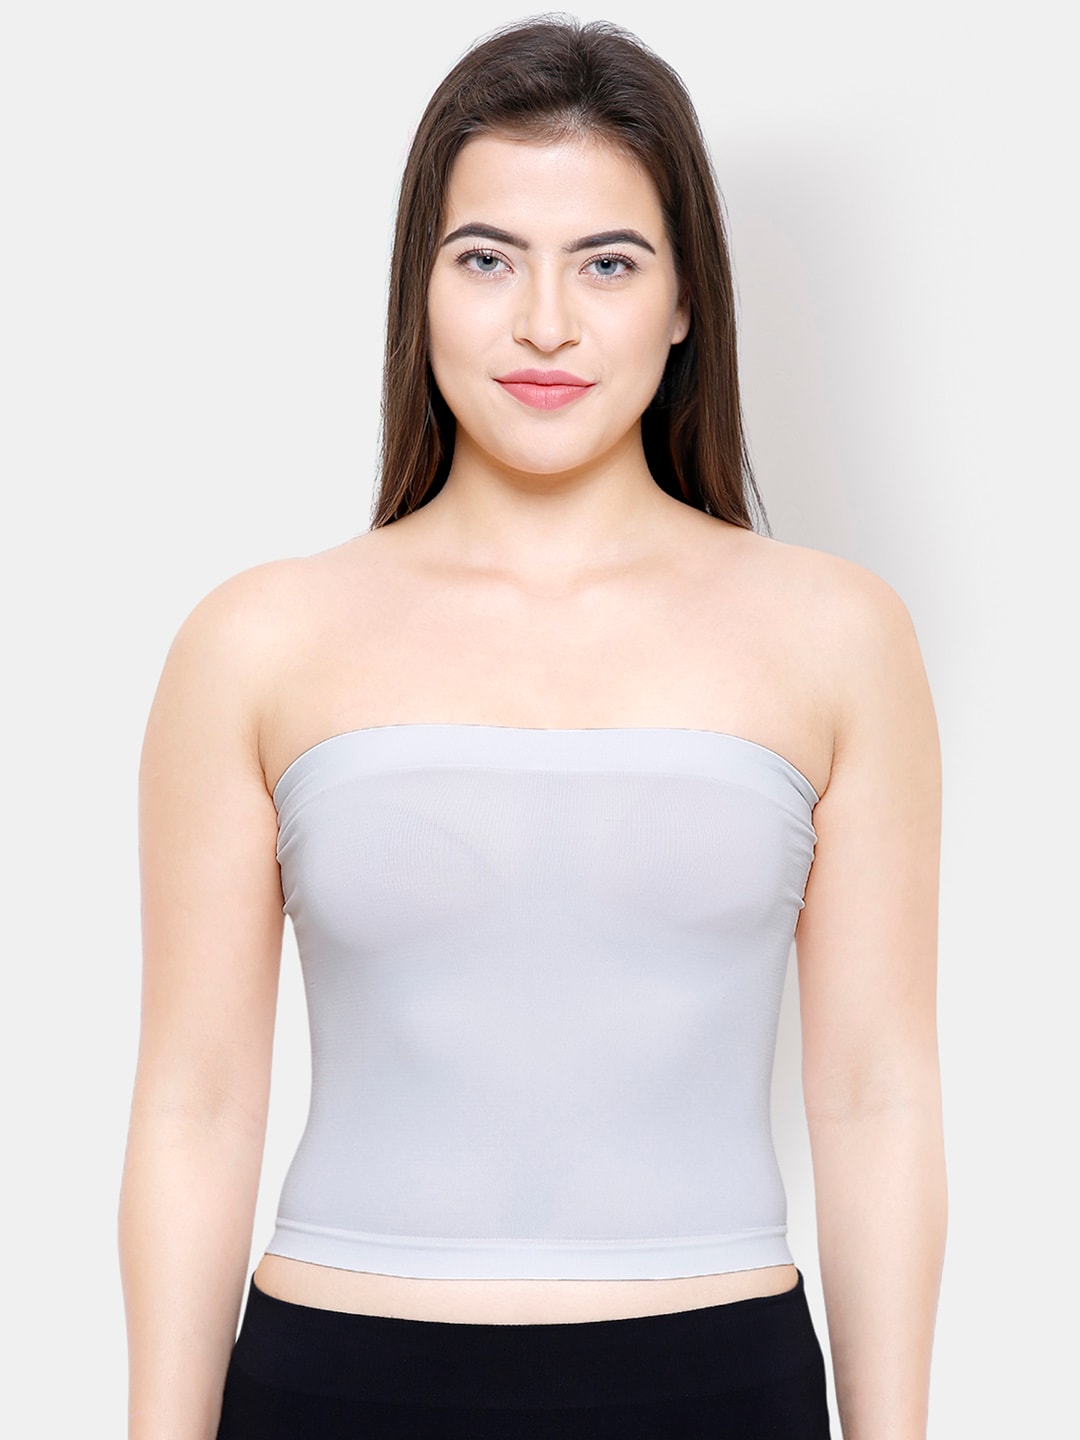 e2acec236f Camisoles - Buy Camisole for Women   Girls Online at Best Price